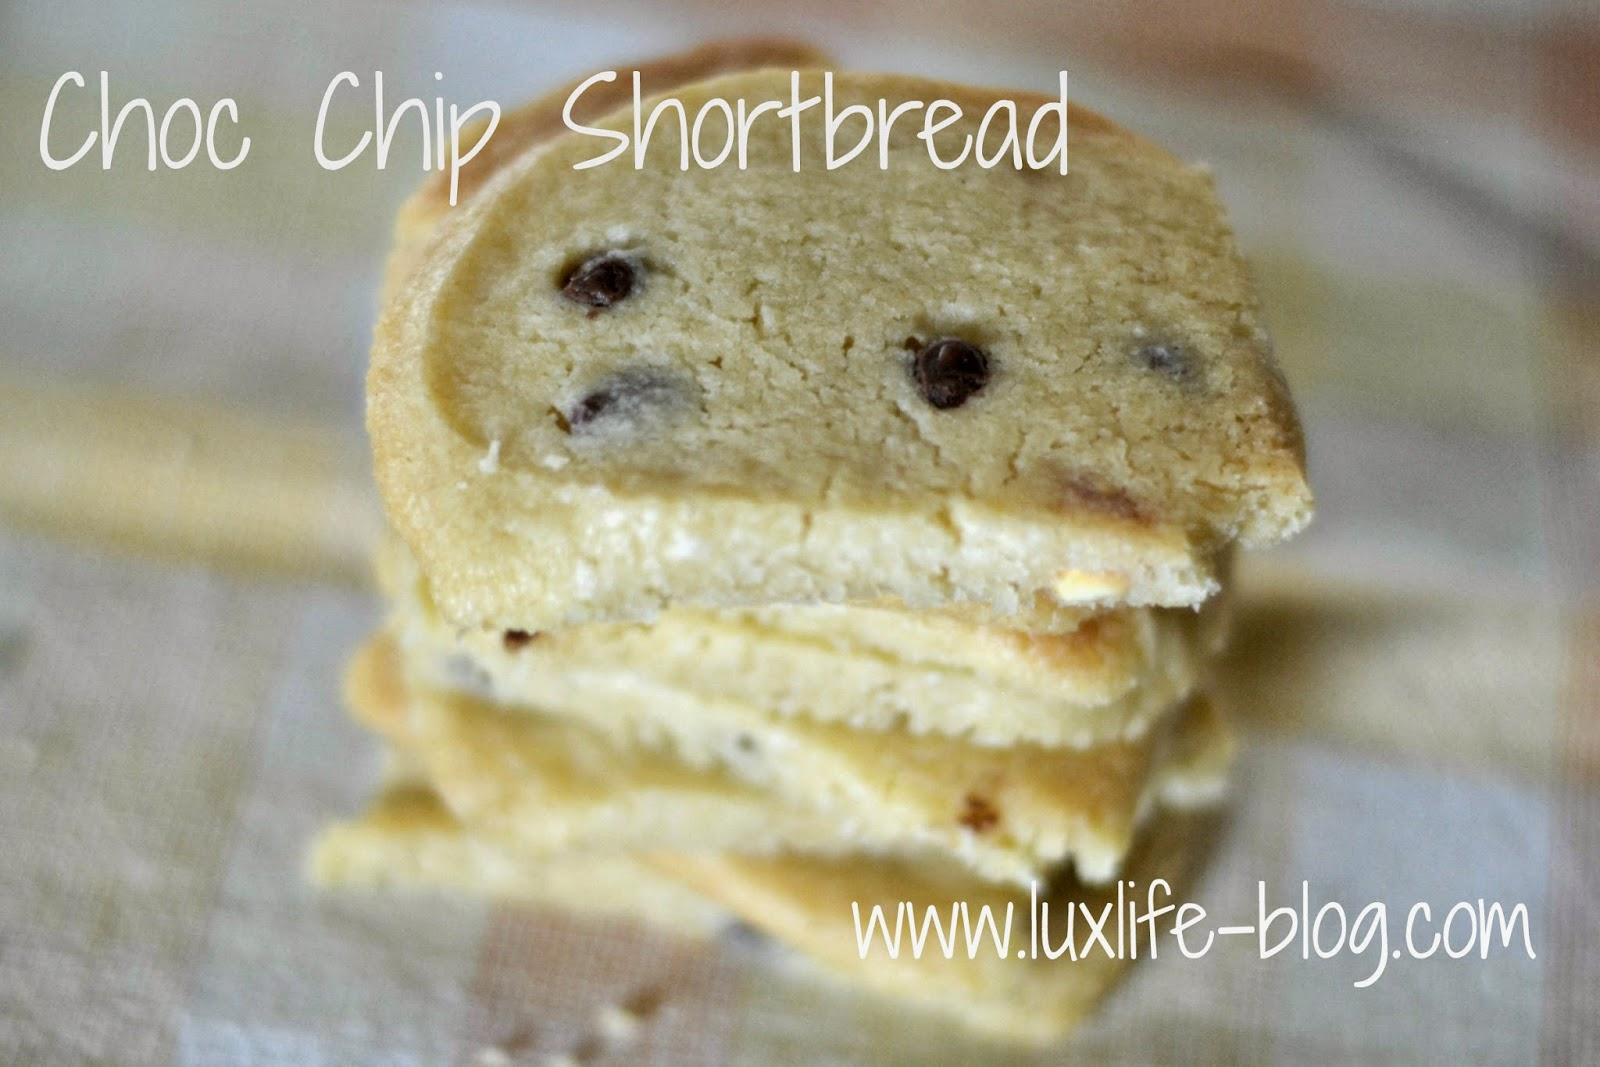 Chocolate Chip Shortbread Recipe